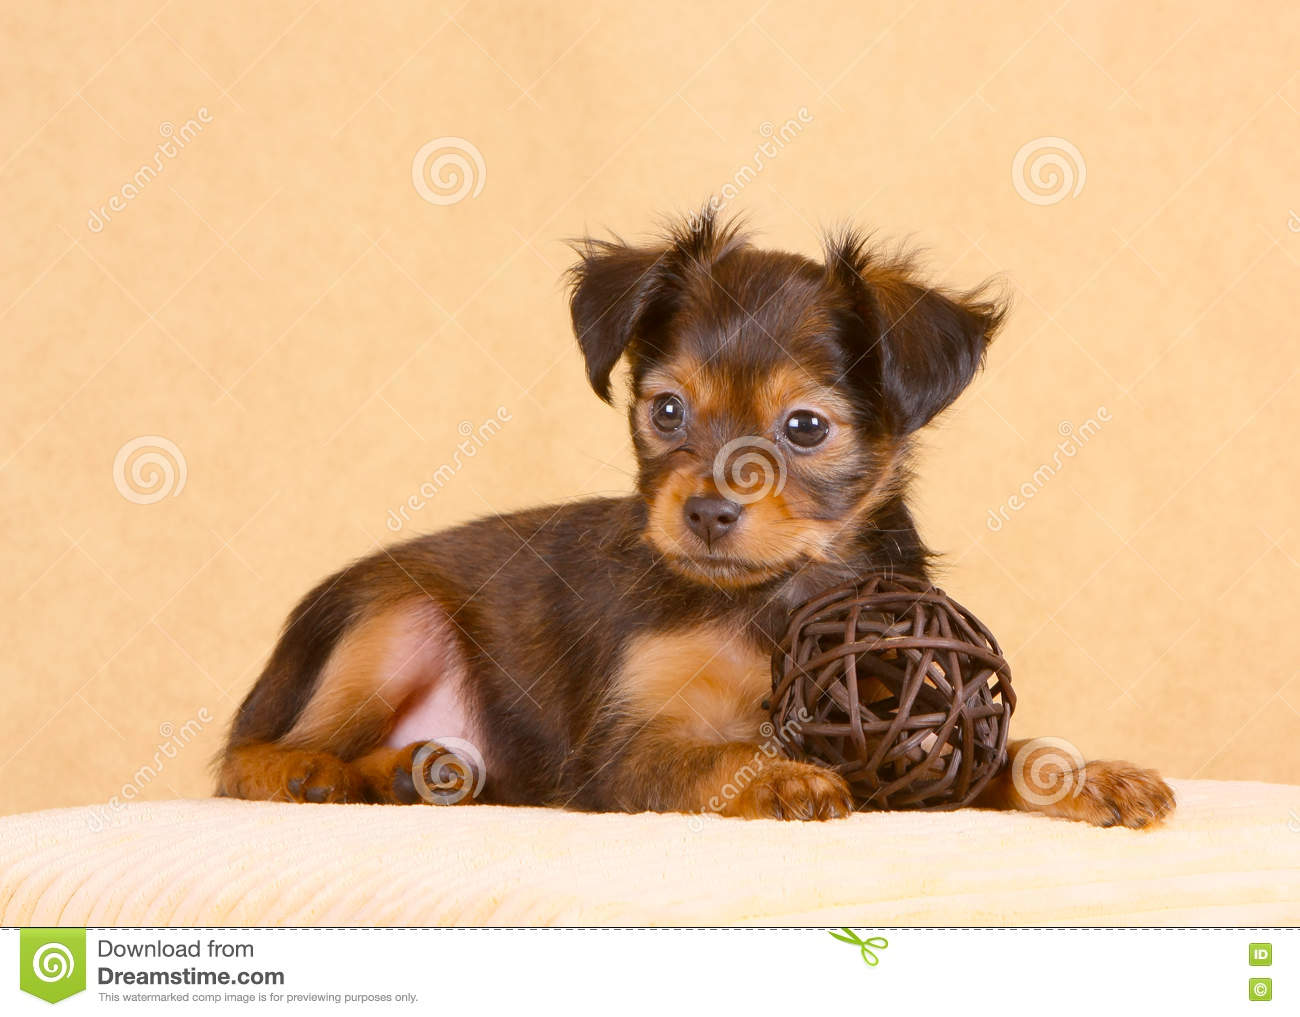 Red Puppy Lying On The Pillow. Dog With Floppy Ears. Stock Photo.